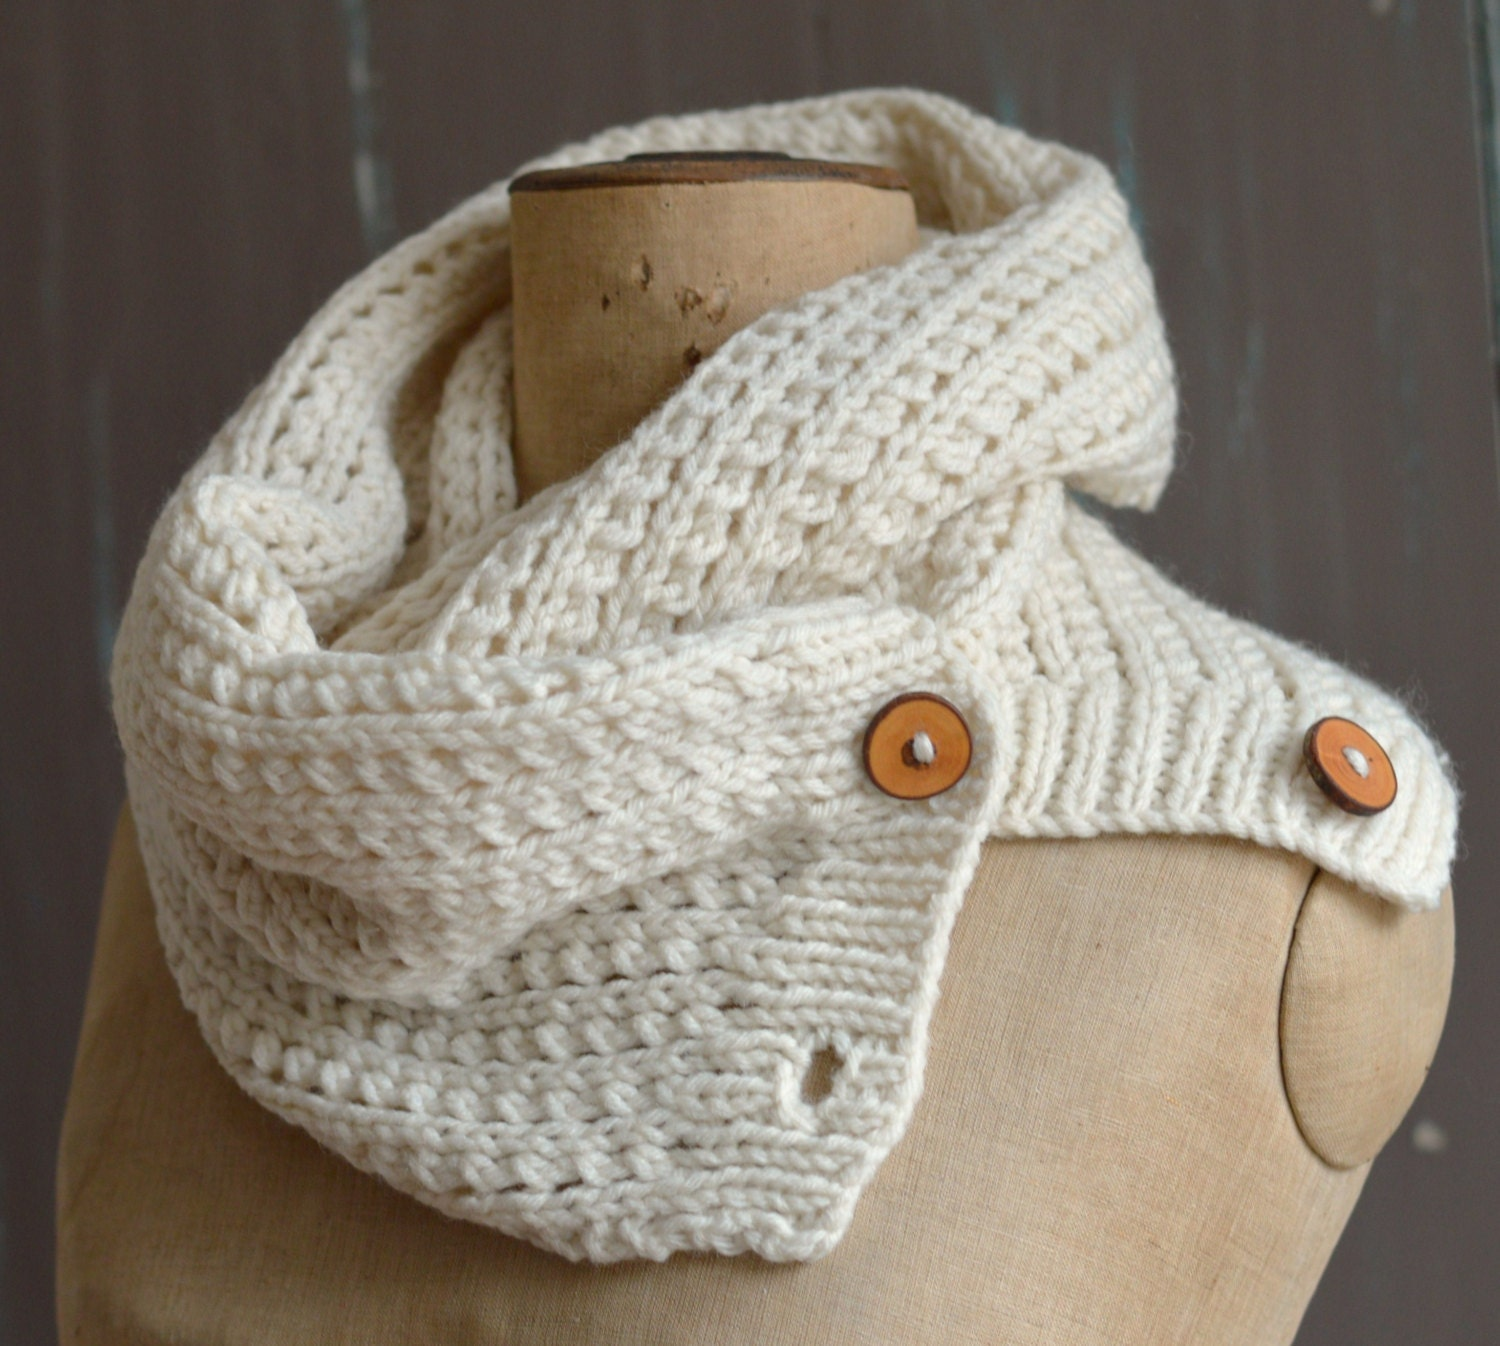 Easy Knitting Patterns For Beginners Scarf : Knitting pattern scarf very easy beginner by richmondhillknits